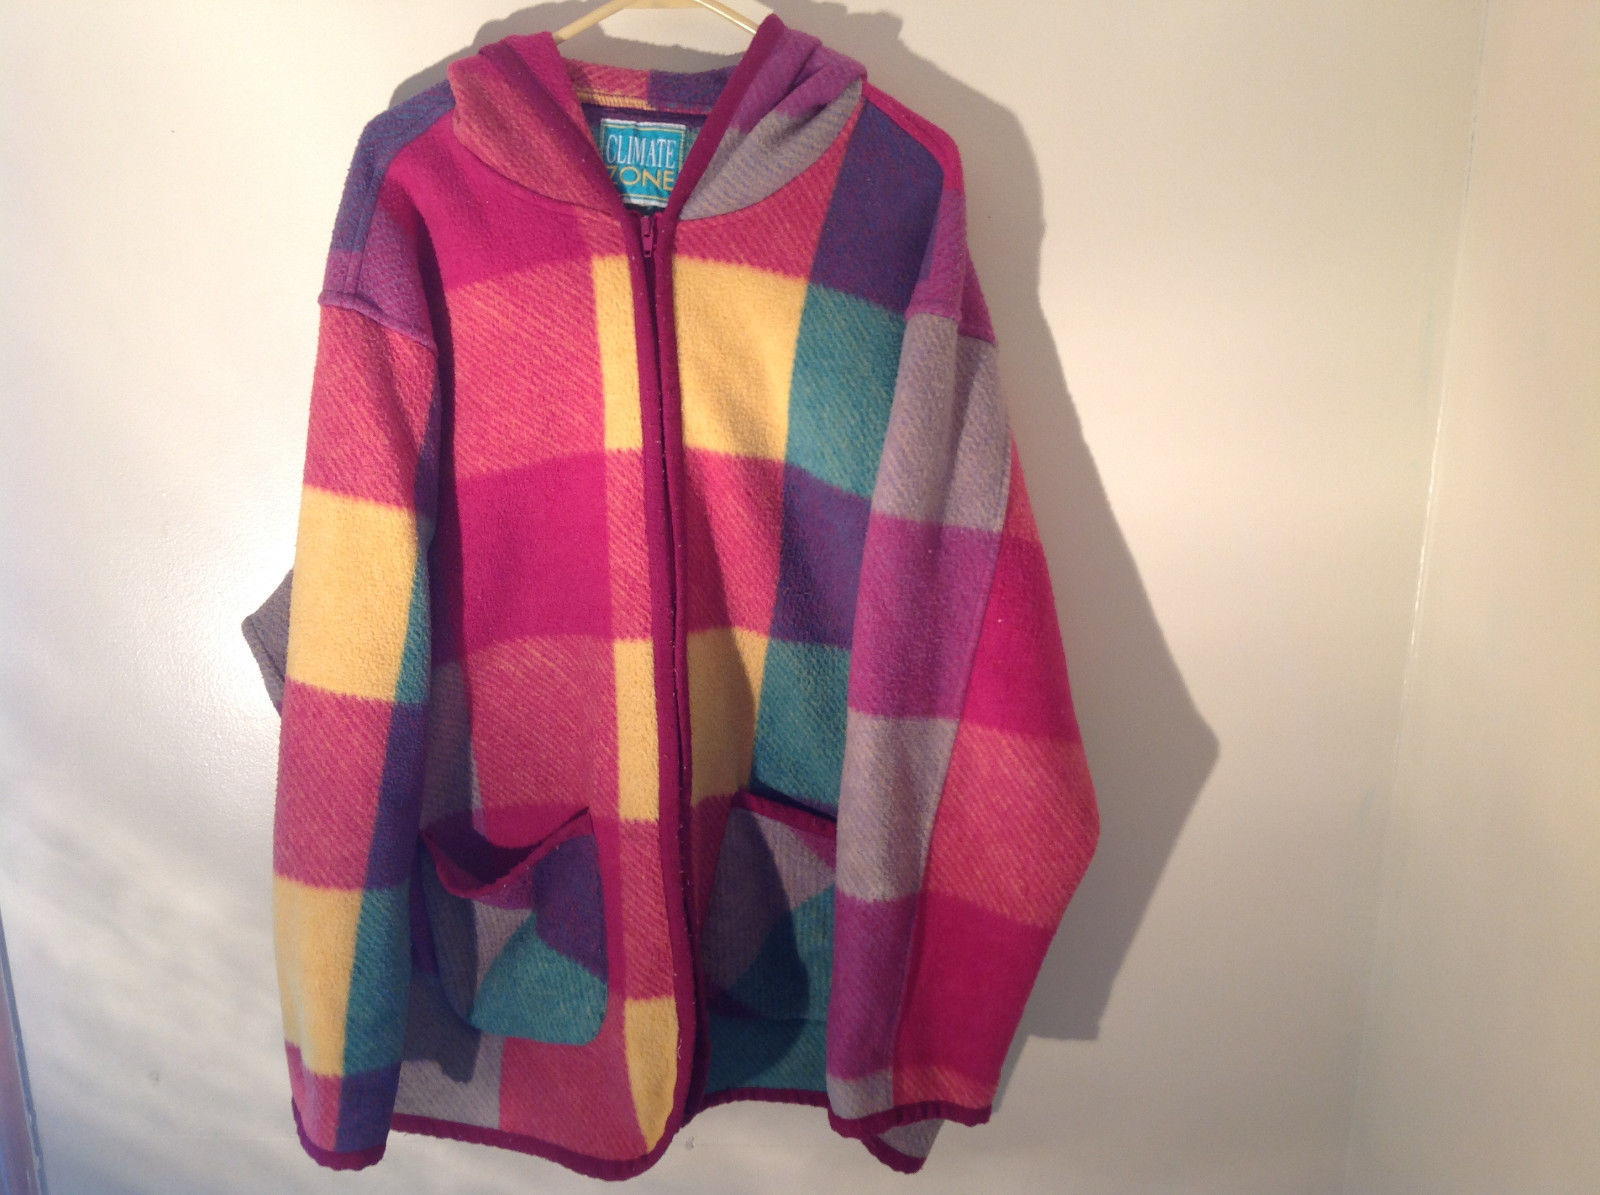 Climate Zone Very Warm Purple Green Yellow Pink Sweater with Hood Size Large